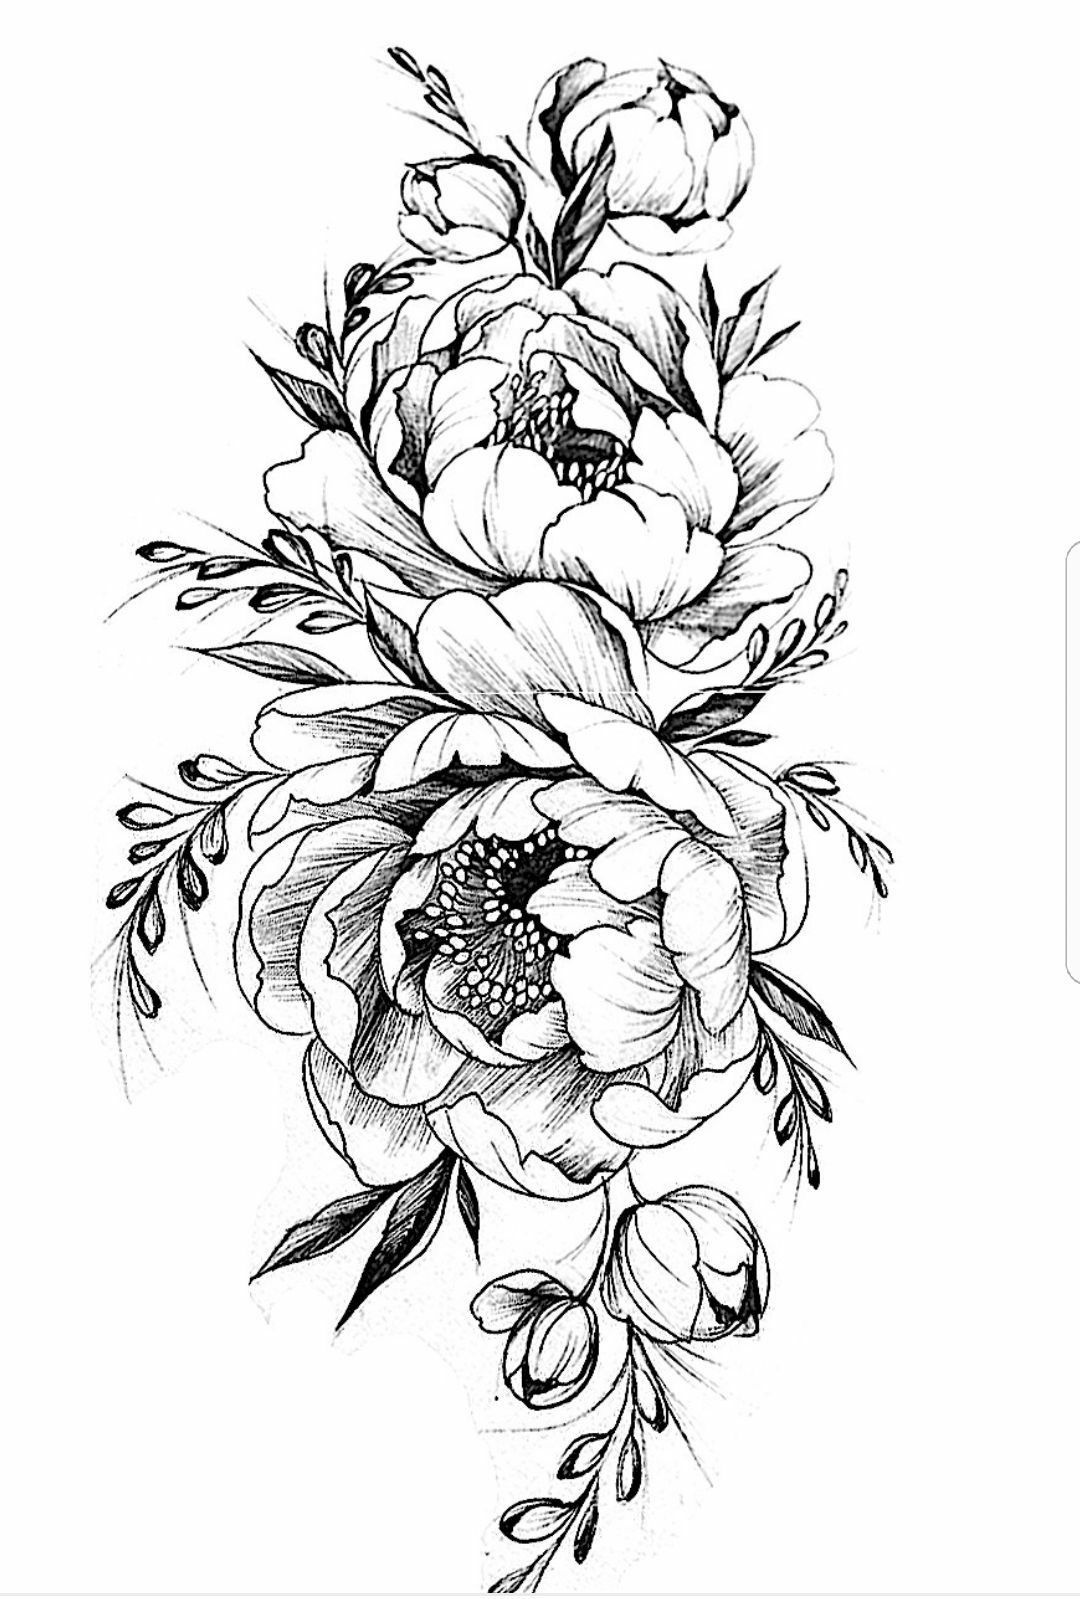 1080x1599 Tattoo To Draw Tattoo Drawings, Tattoos, Tattoo Designs